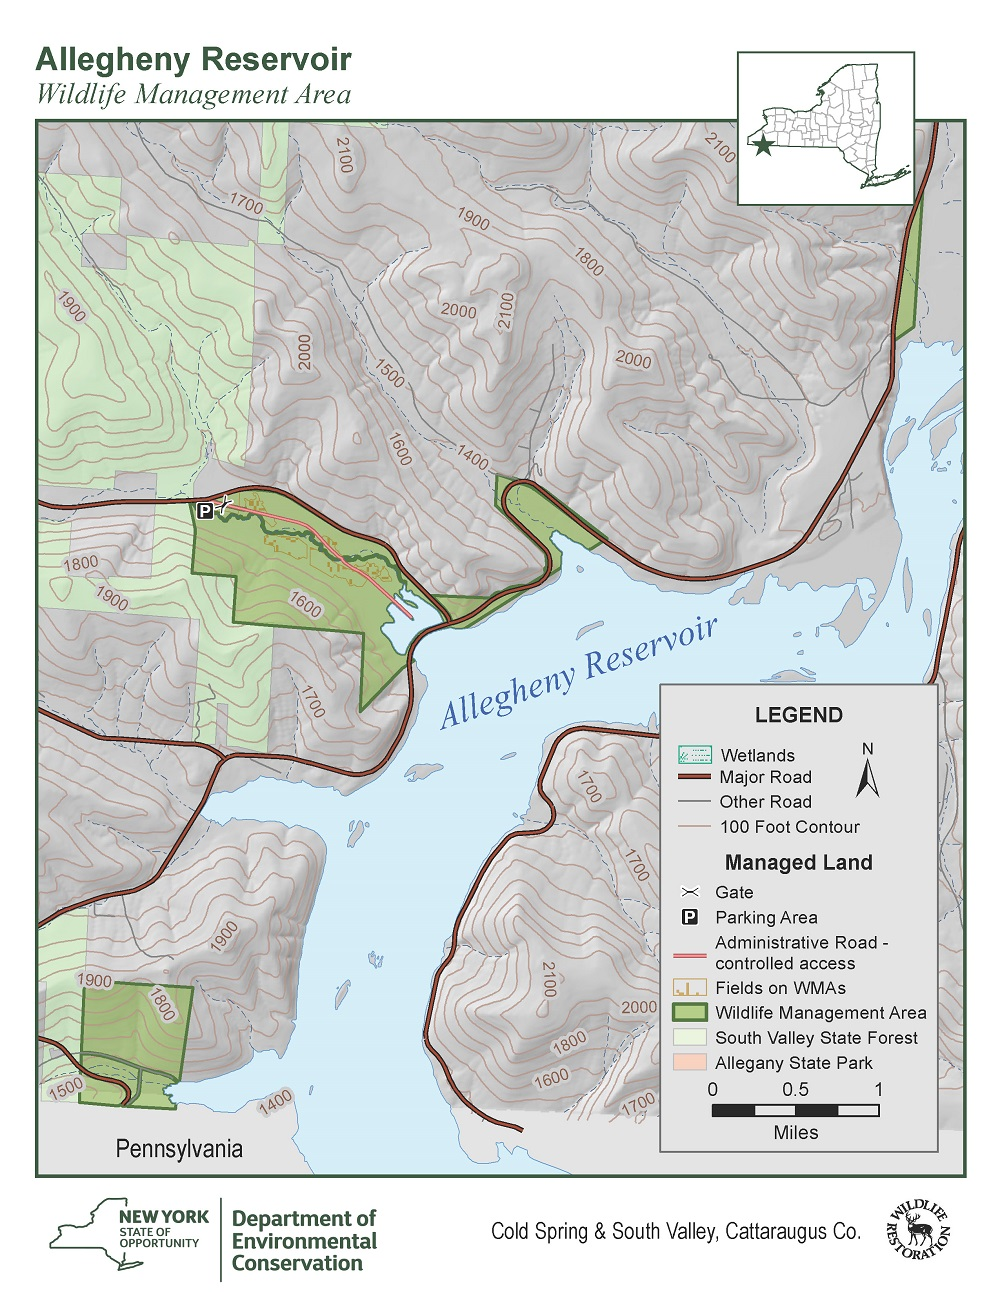 Map of Allegheny Reservoir Wildlife Management Area